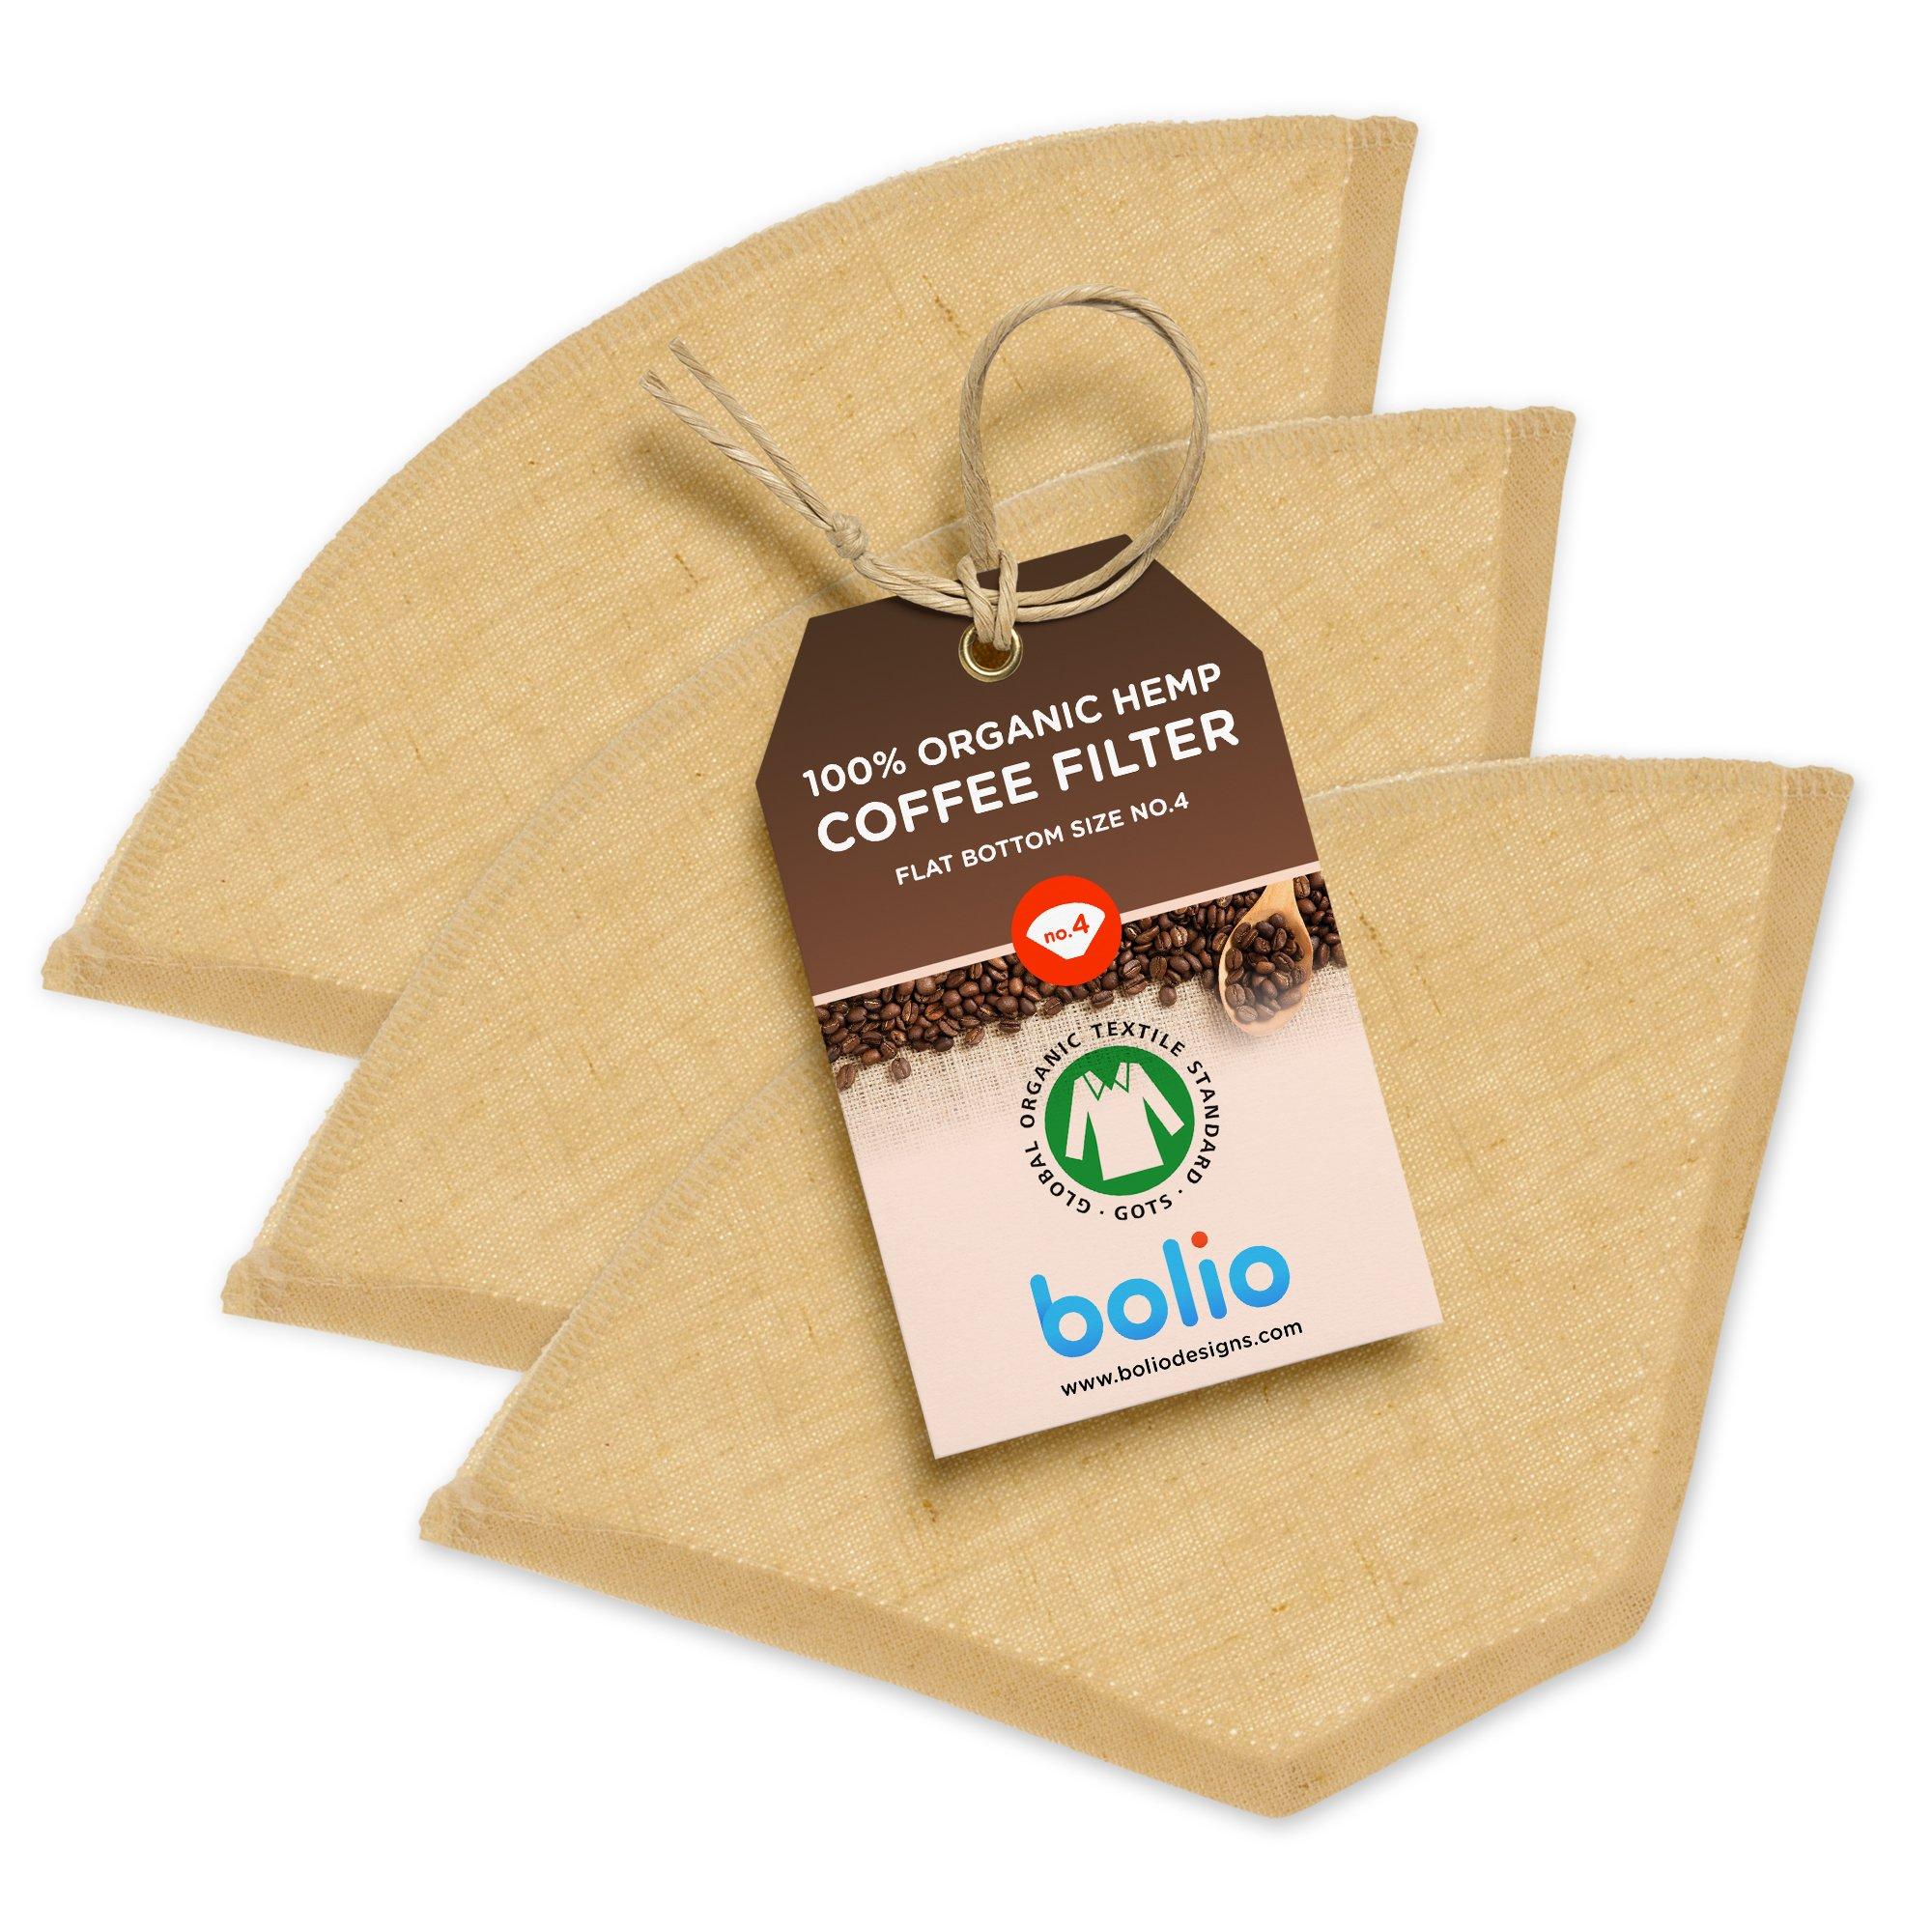 Bolio Organic Hemp Cone Coffee Filter - Reusable and Great for Making Smooth pour Over Coffee - No Plastics - Eco-Friendly Bacteria Resistant Material (Flat bottom, Size No.4, 3-pack)